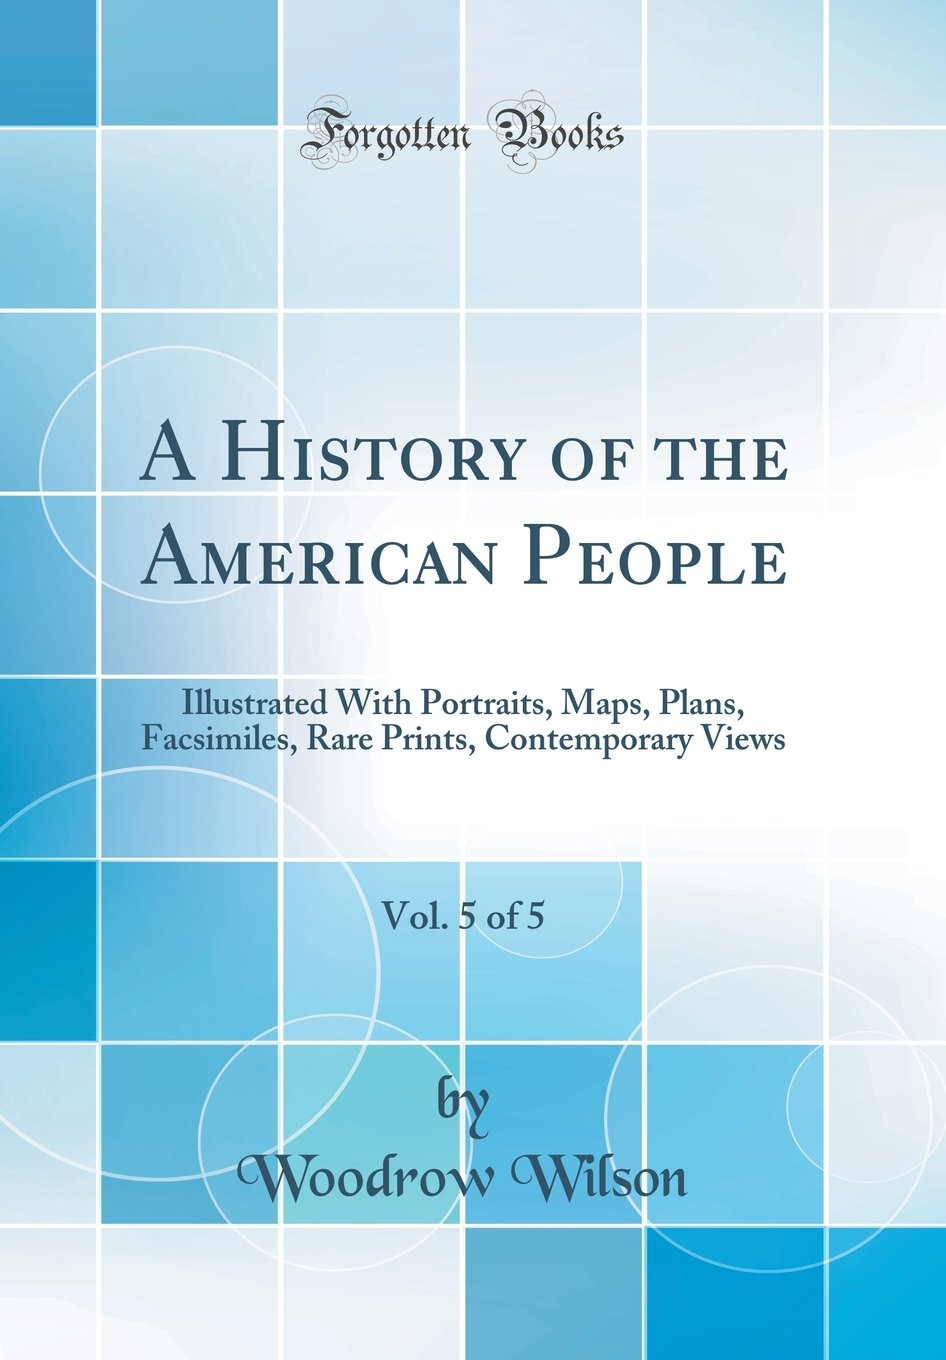 A History of the American People, Vol. 5 of 5: Illustrated With Portraits, Maps, Plans, Facsimiles, Rare Prints, Contemporary Views (Classic Reprint) ebook